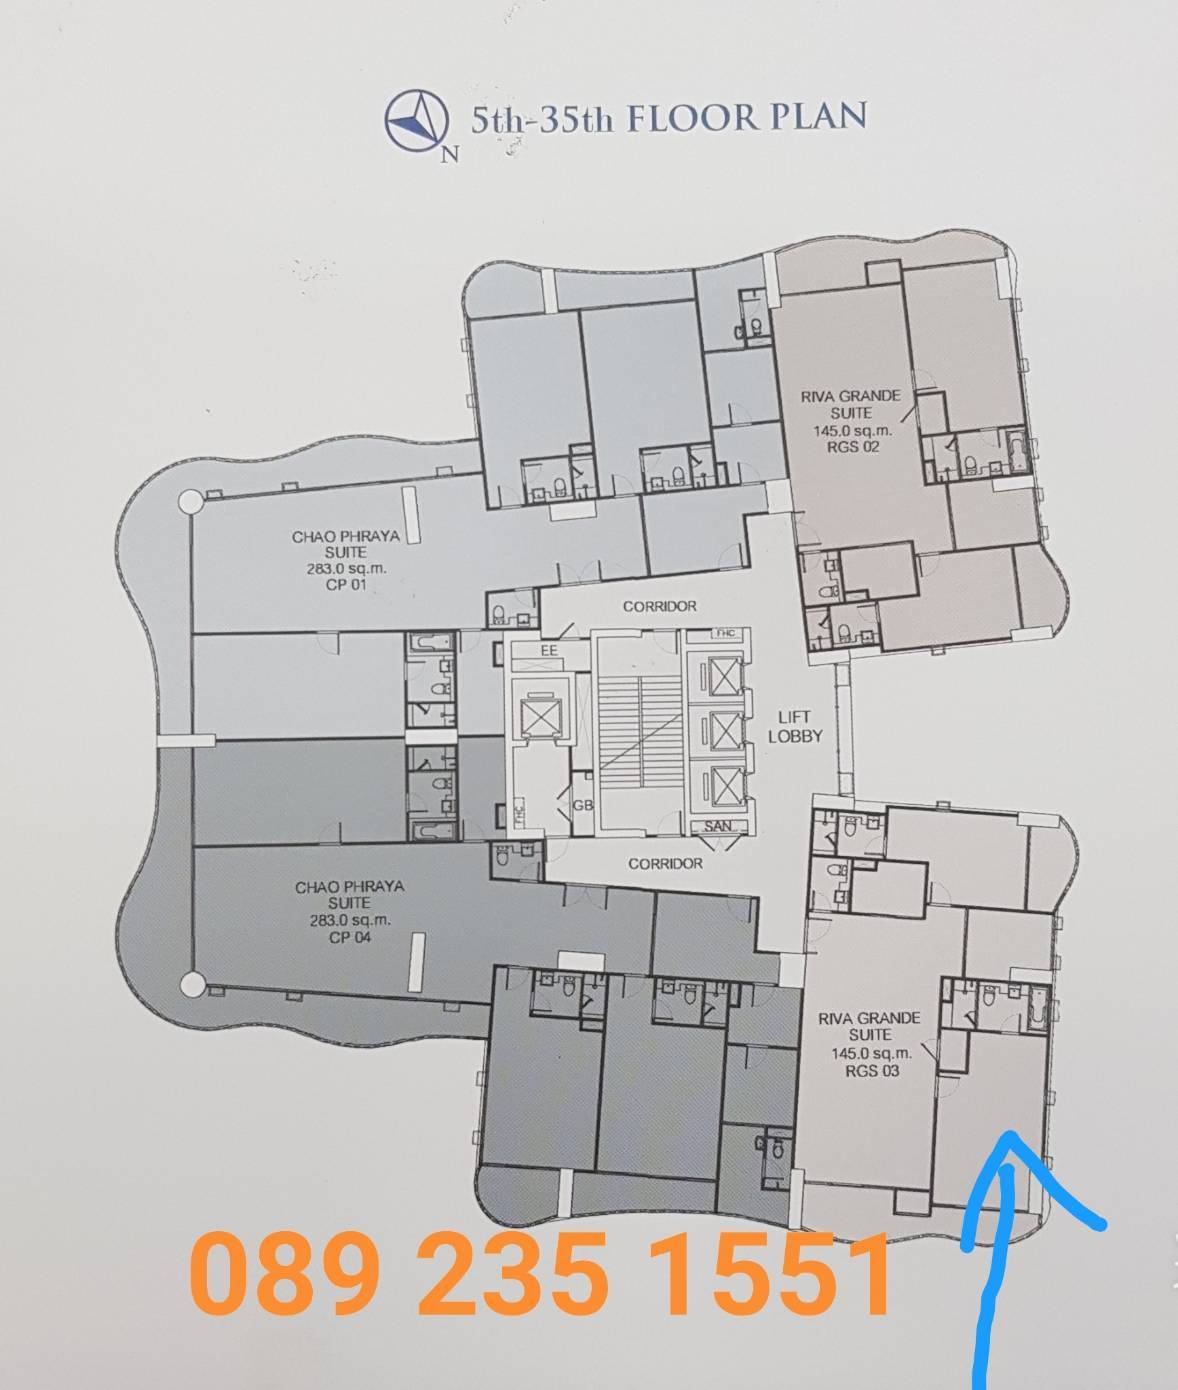 Sale DownCondoRama3 (Riverside),Satupadit : *** Quick sales *** There are many rooms to choose from Supalai Riva Grand at the most special price. New condo by the river, close to Rama 3 road.